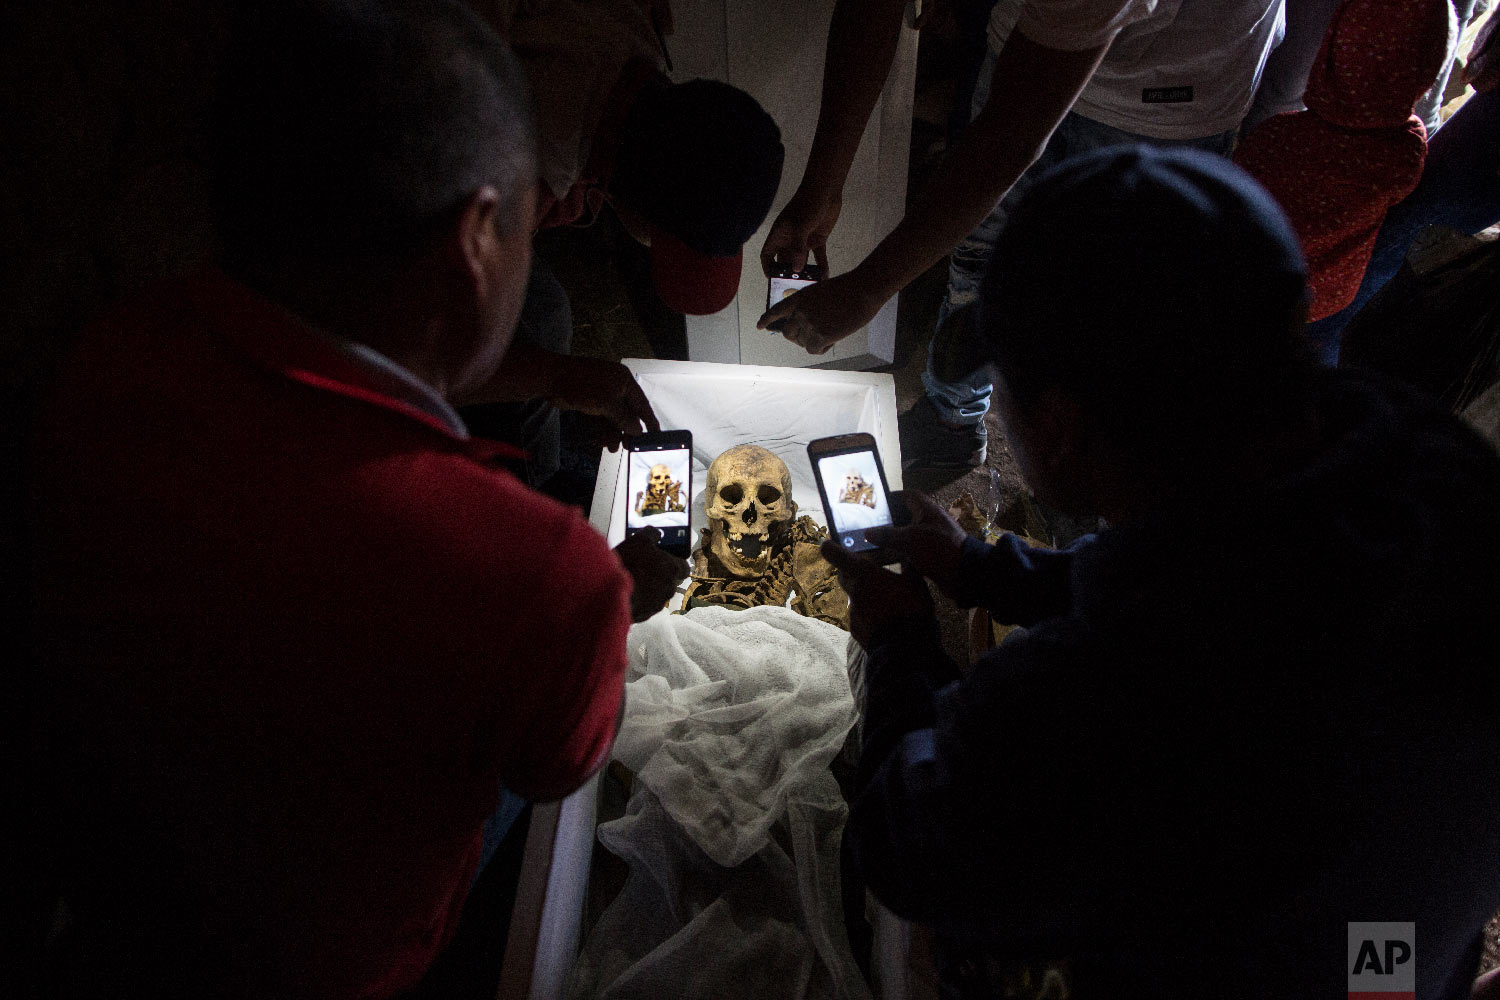 In this Aug. 14, 2018 photo, relatives take cell phone pictures of the remains of Fortunate Ventura Huamacusi, a man who was killed by the Peruvian army in 1983, before placing the coffin in its niche at the Rosaspata cemetery in Peru's Ayacucho province. (AP Photo/Rodrigo Abd)